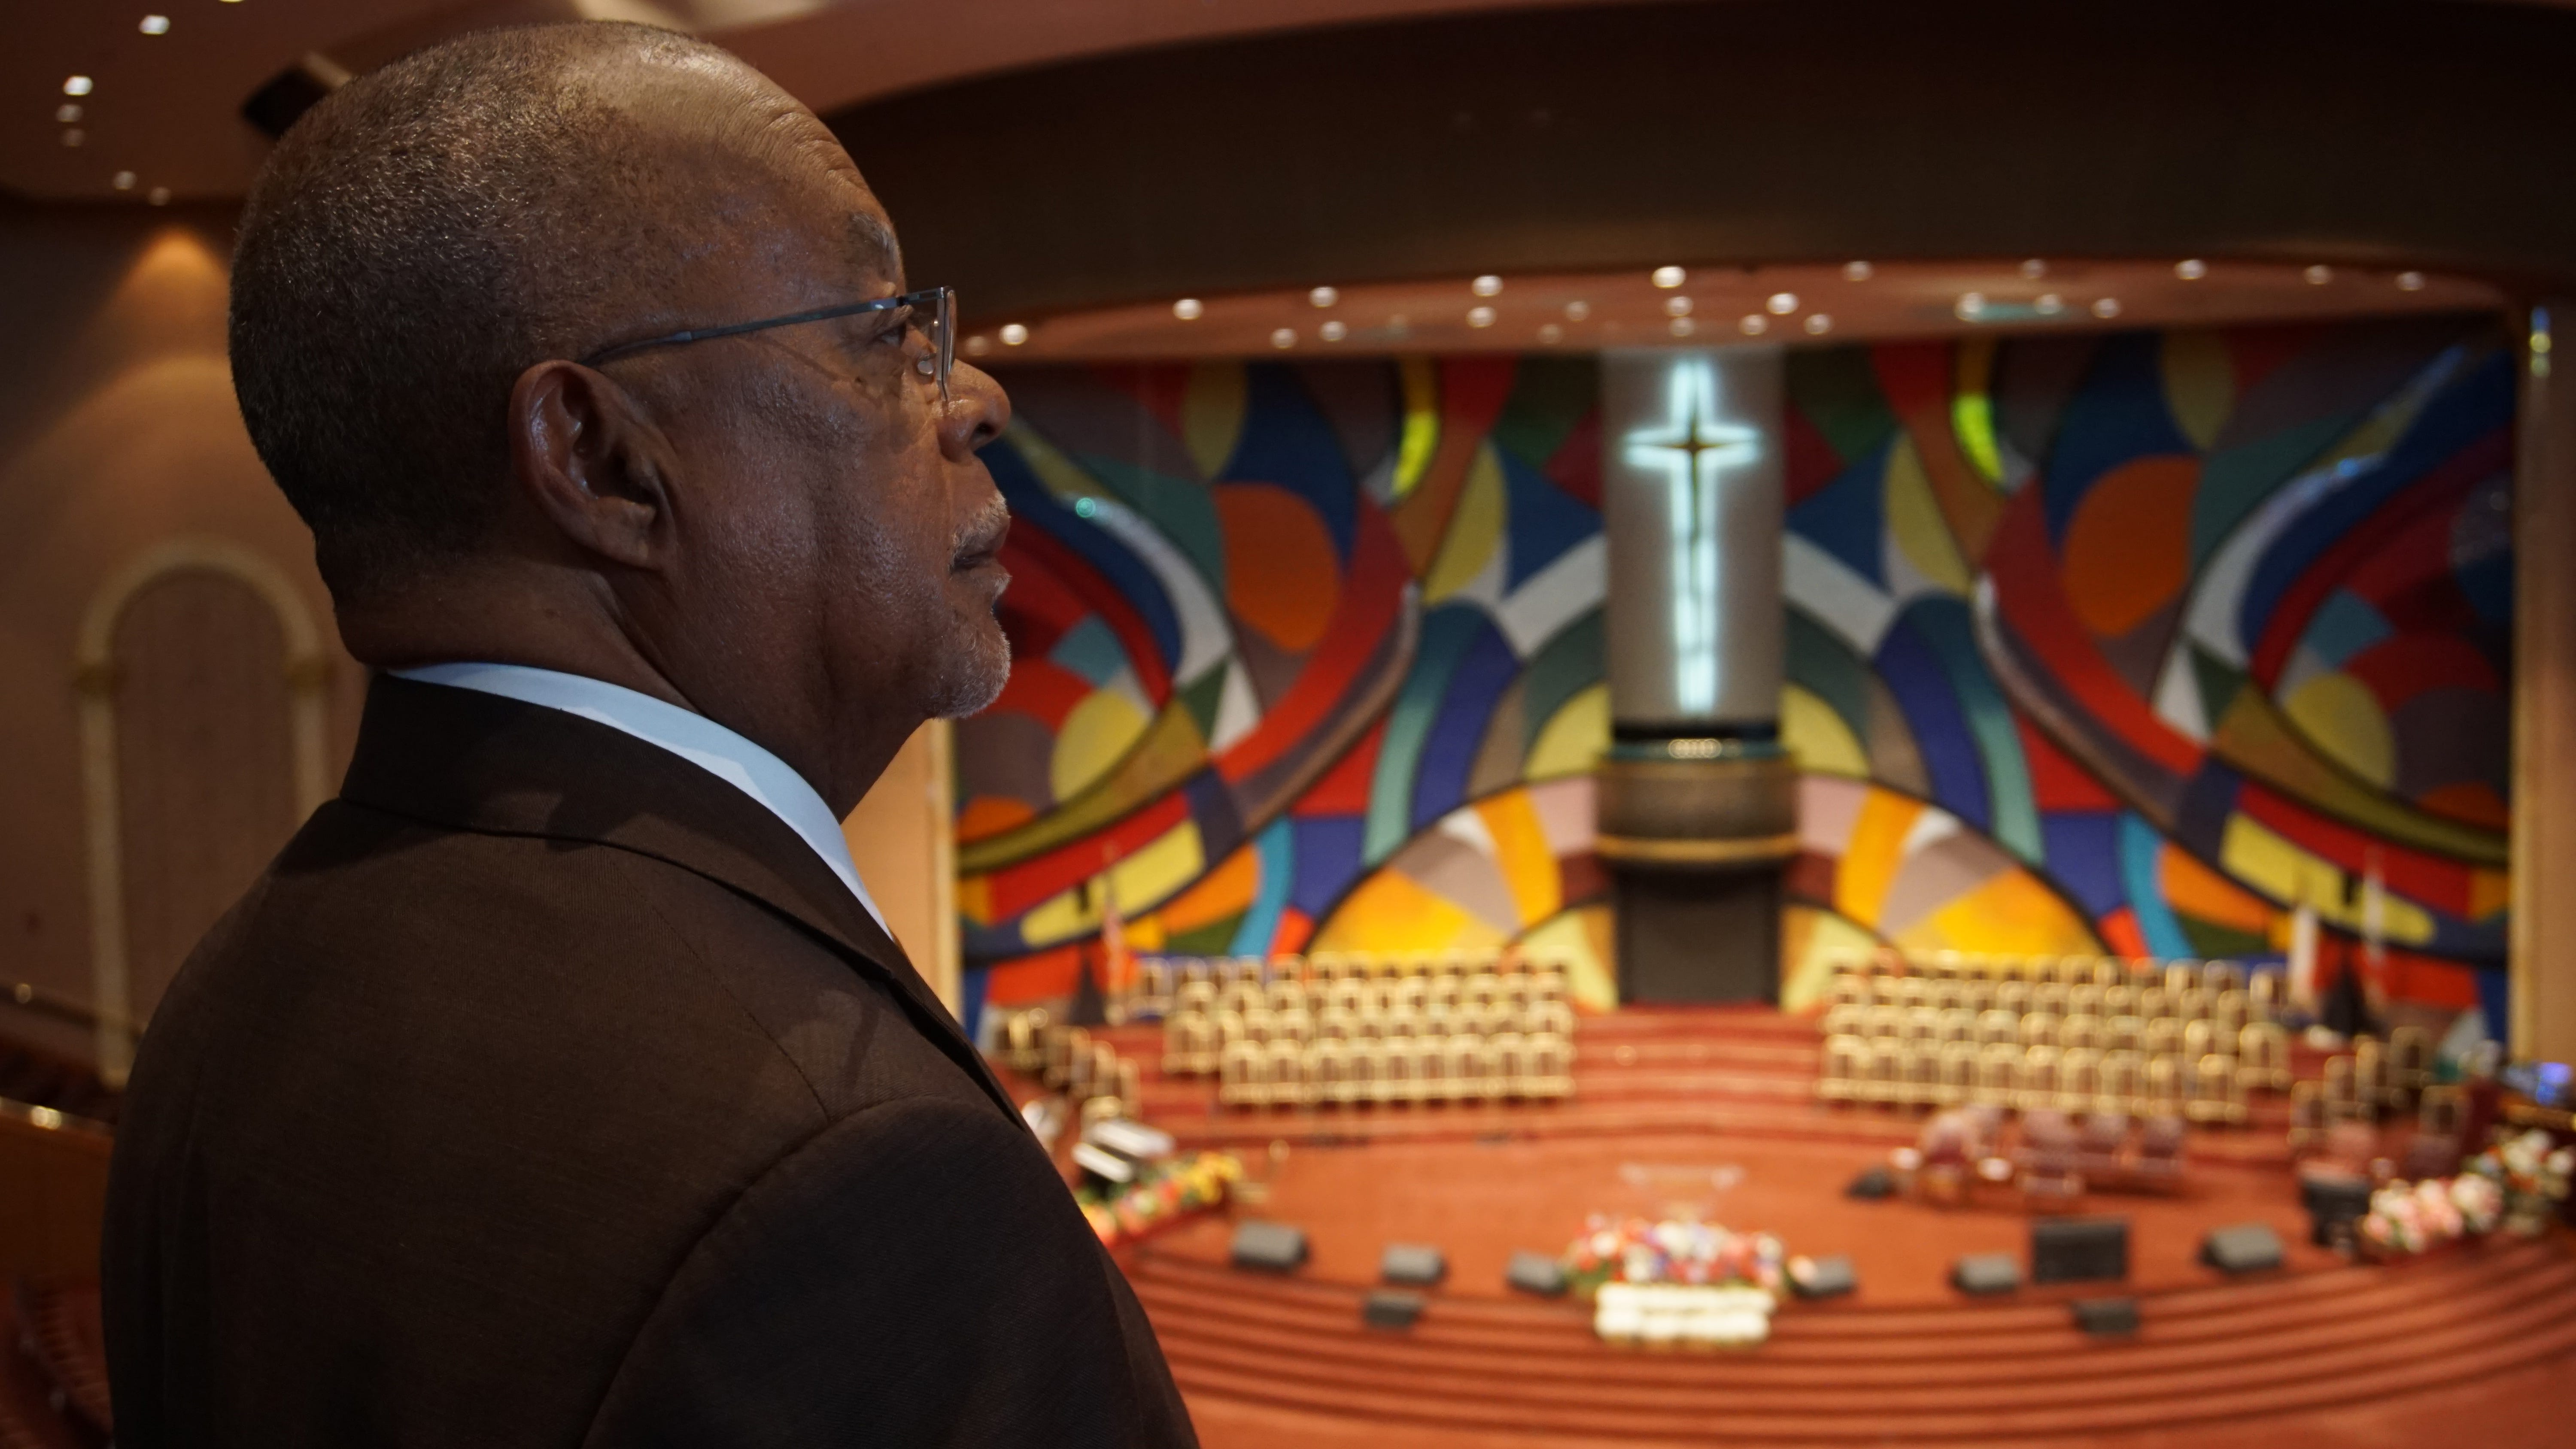 PBS' Black church documentary celebrates hope, strength amid oppression, with plenty of music